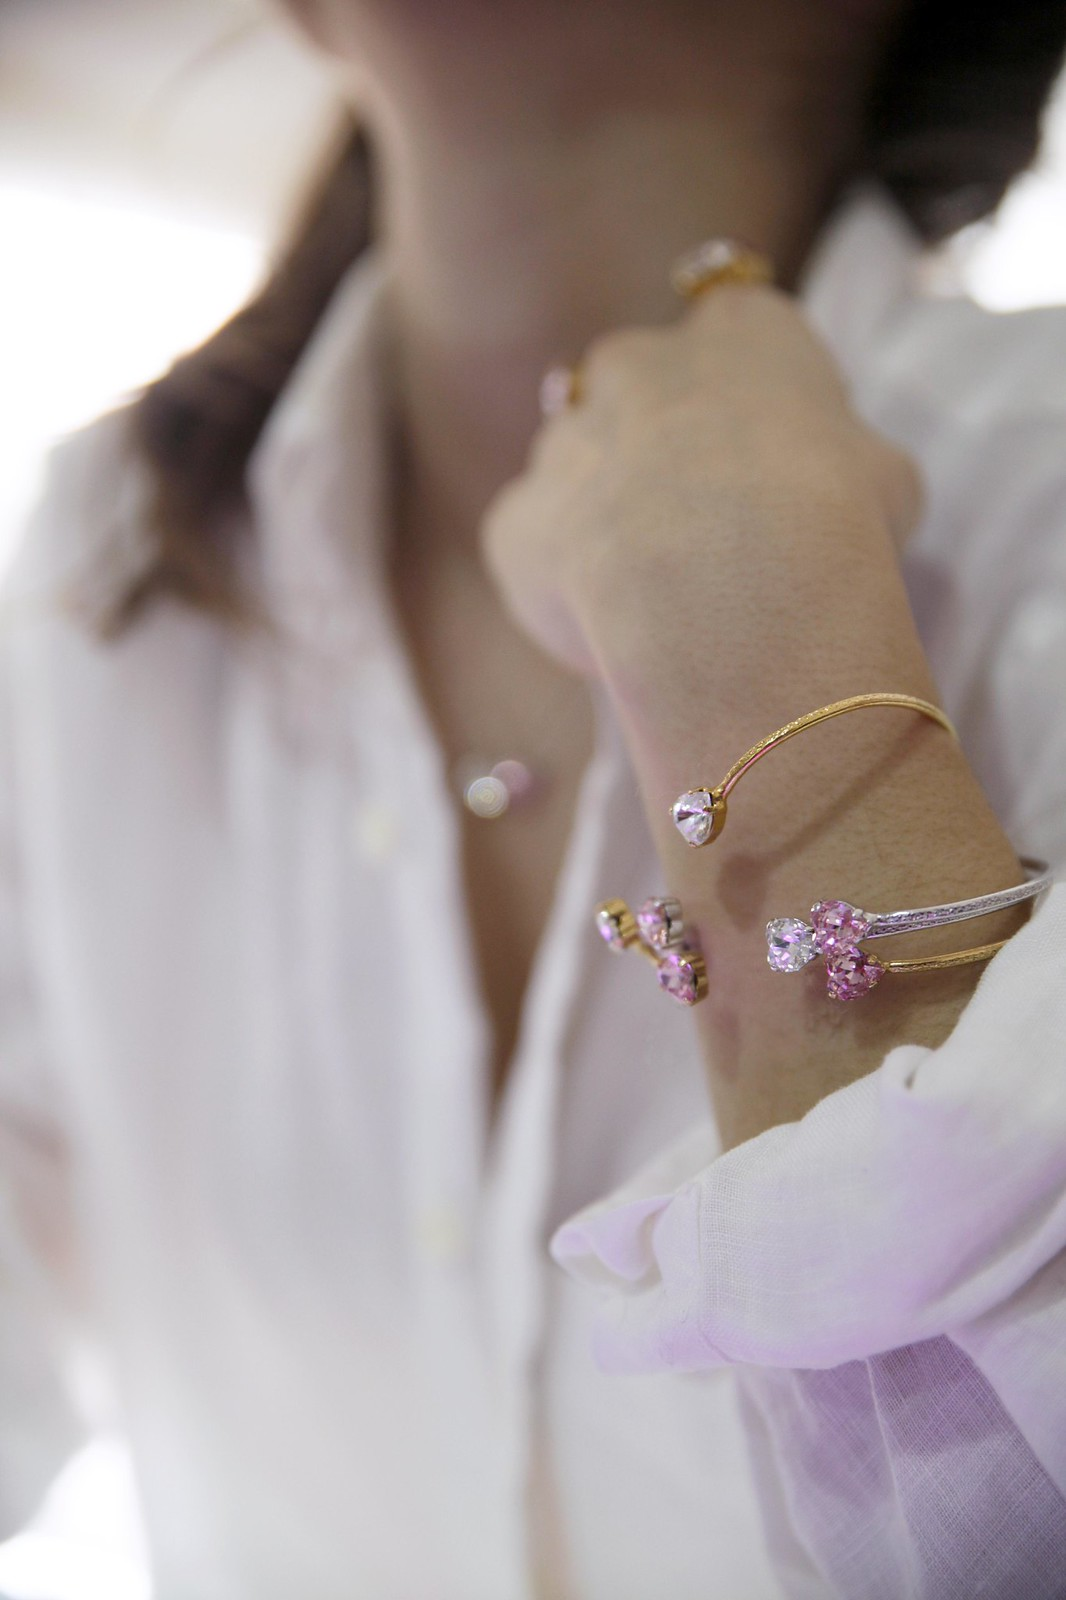 08_St_Valentines_True_Love_With_Caroline_Svedbom_Jewels_Theguestgirl_Brand_Ambassador_Spain_Barcelona_Swarovski_blogger